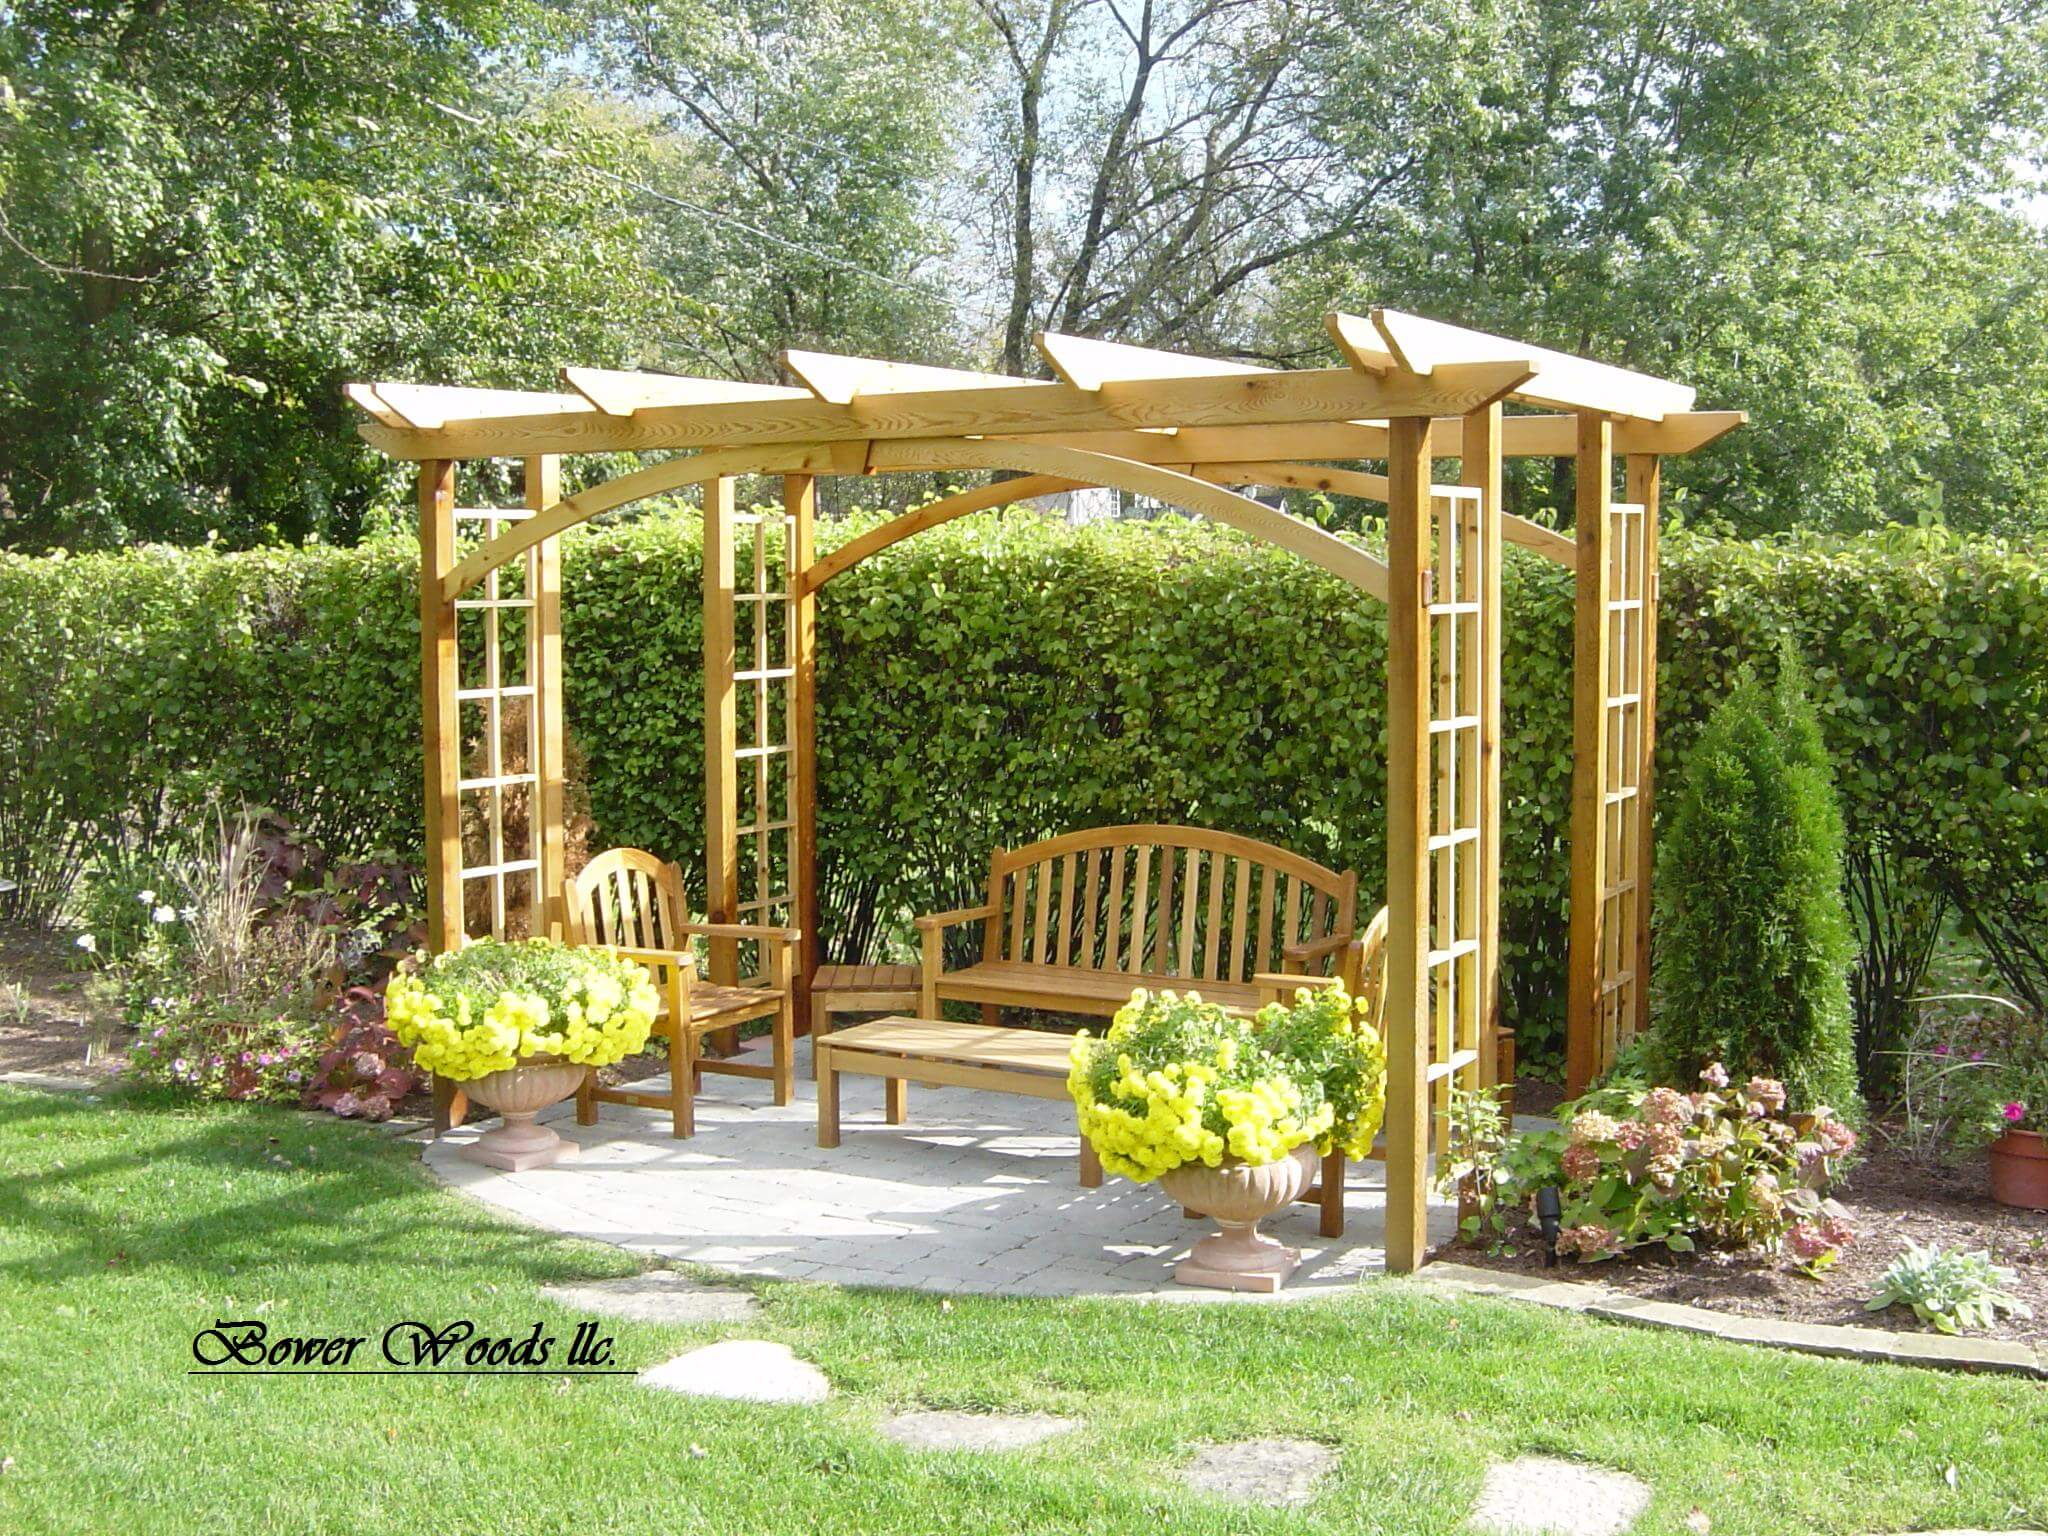 32 Best Pergola Ideas And Designs You Will Love In 2019 with regard to Backyard Arbors Ideas